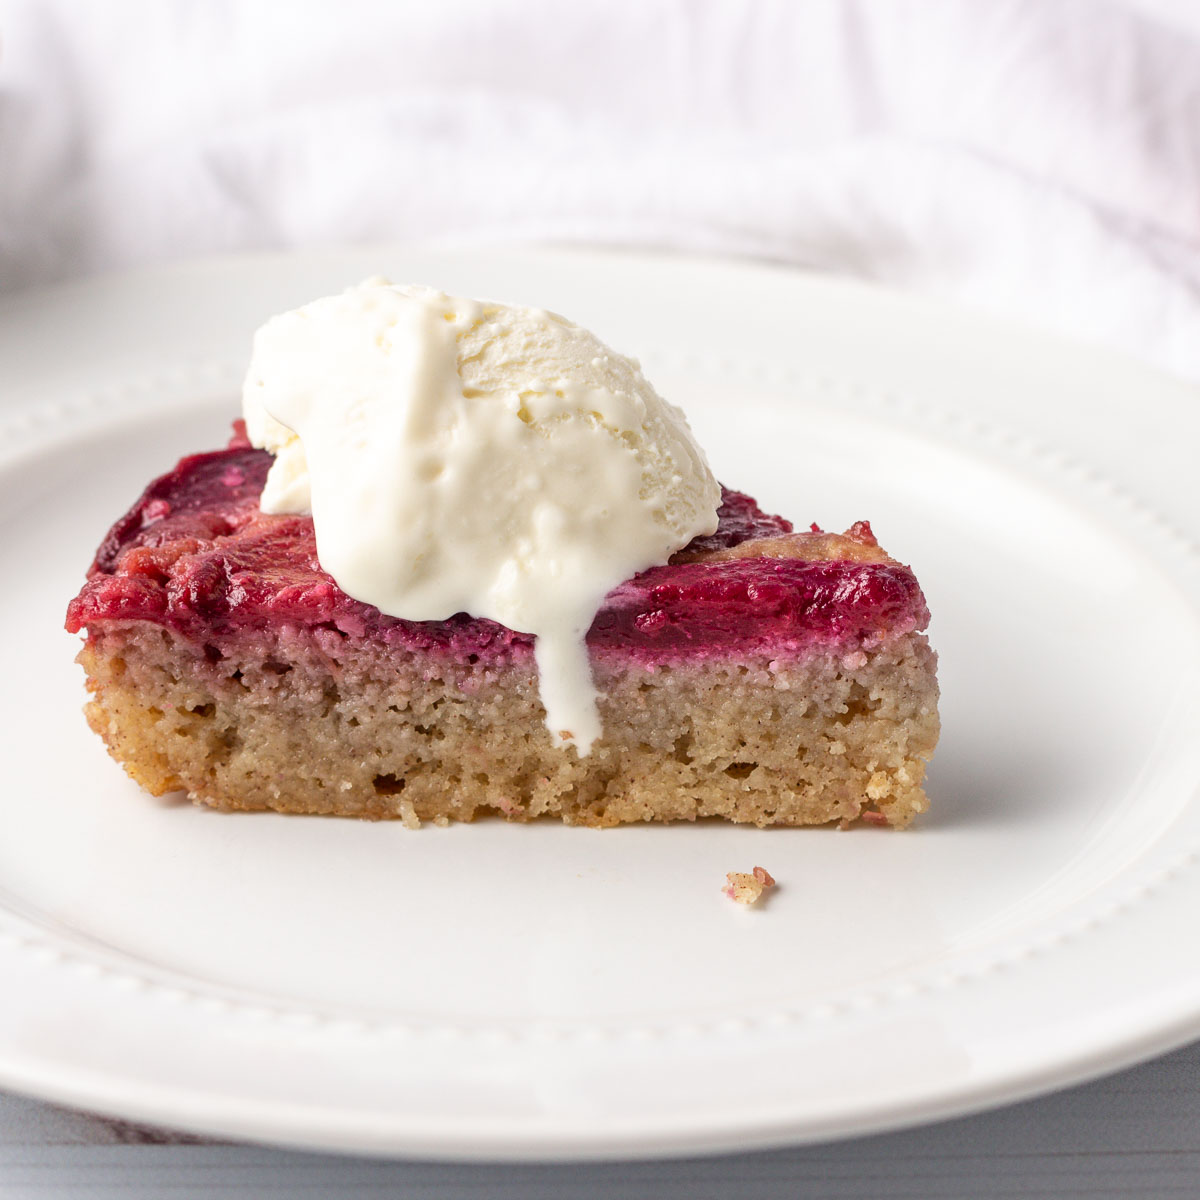 A slice of keto plum cake with low carb ice cream.